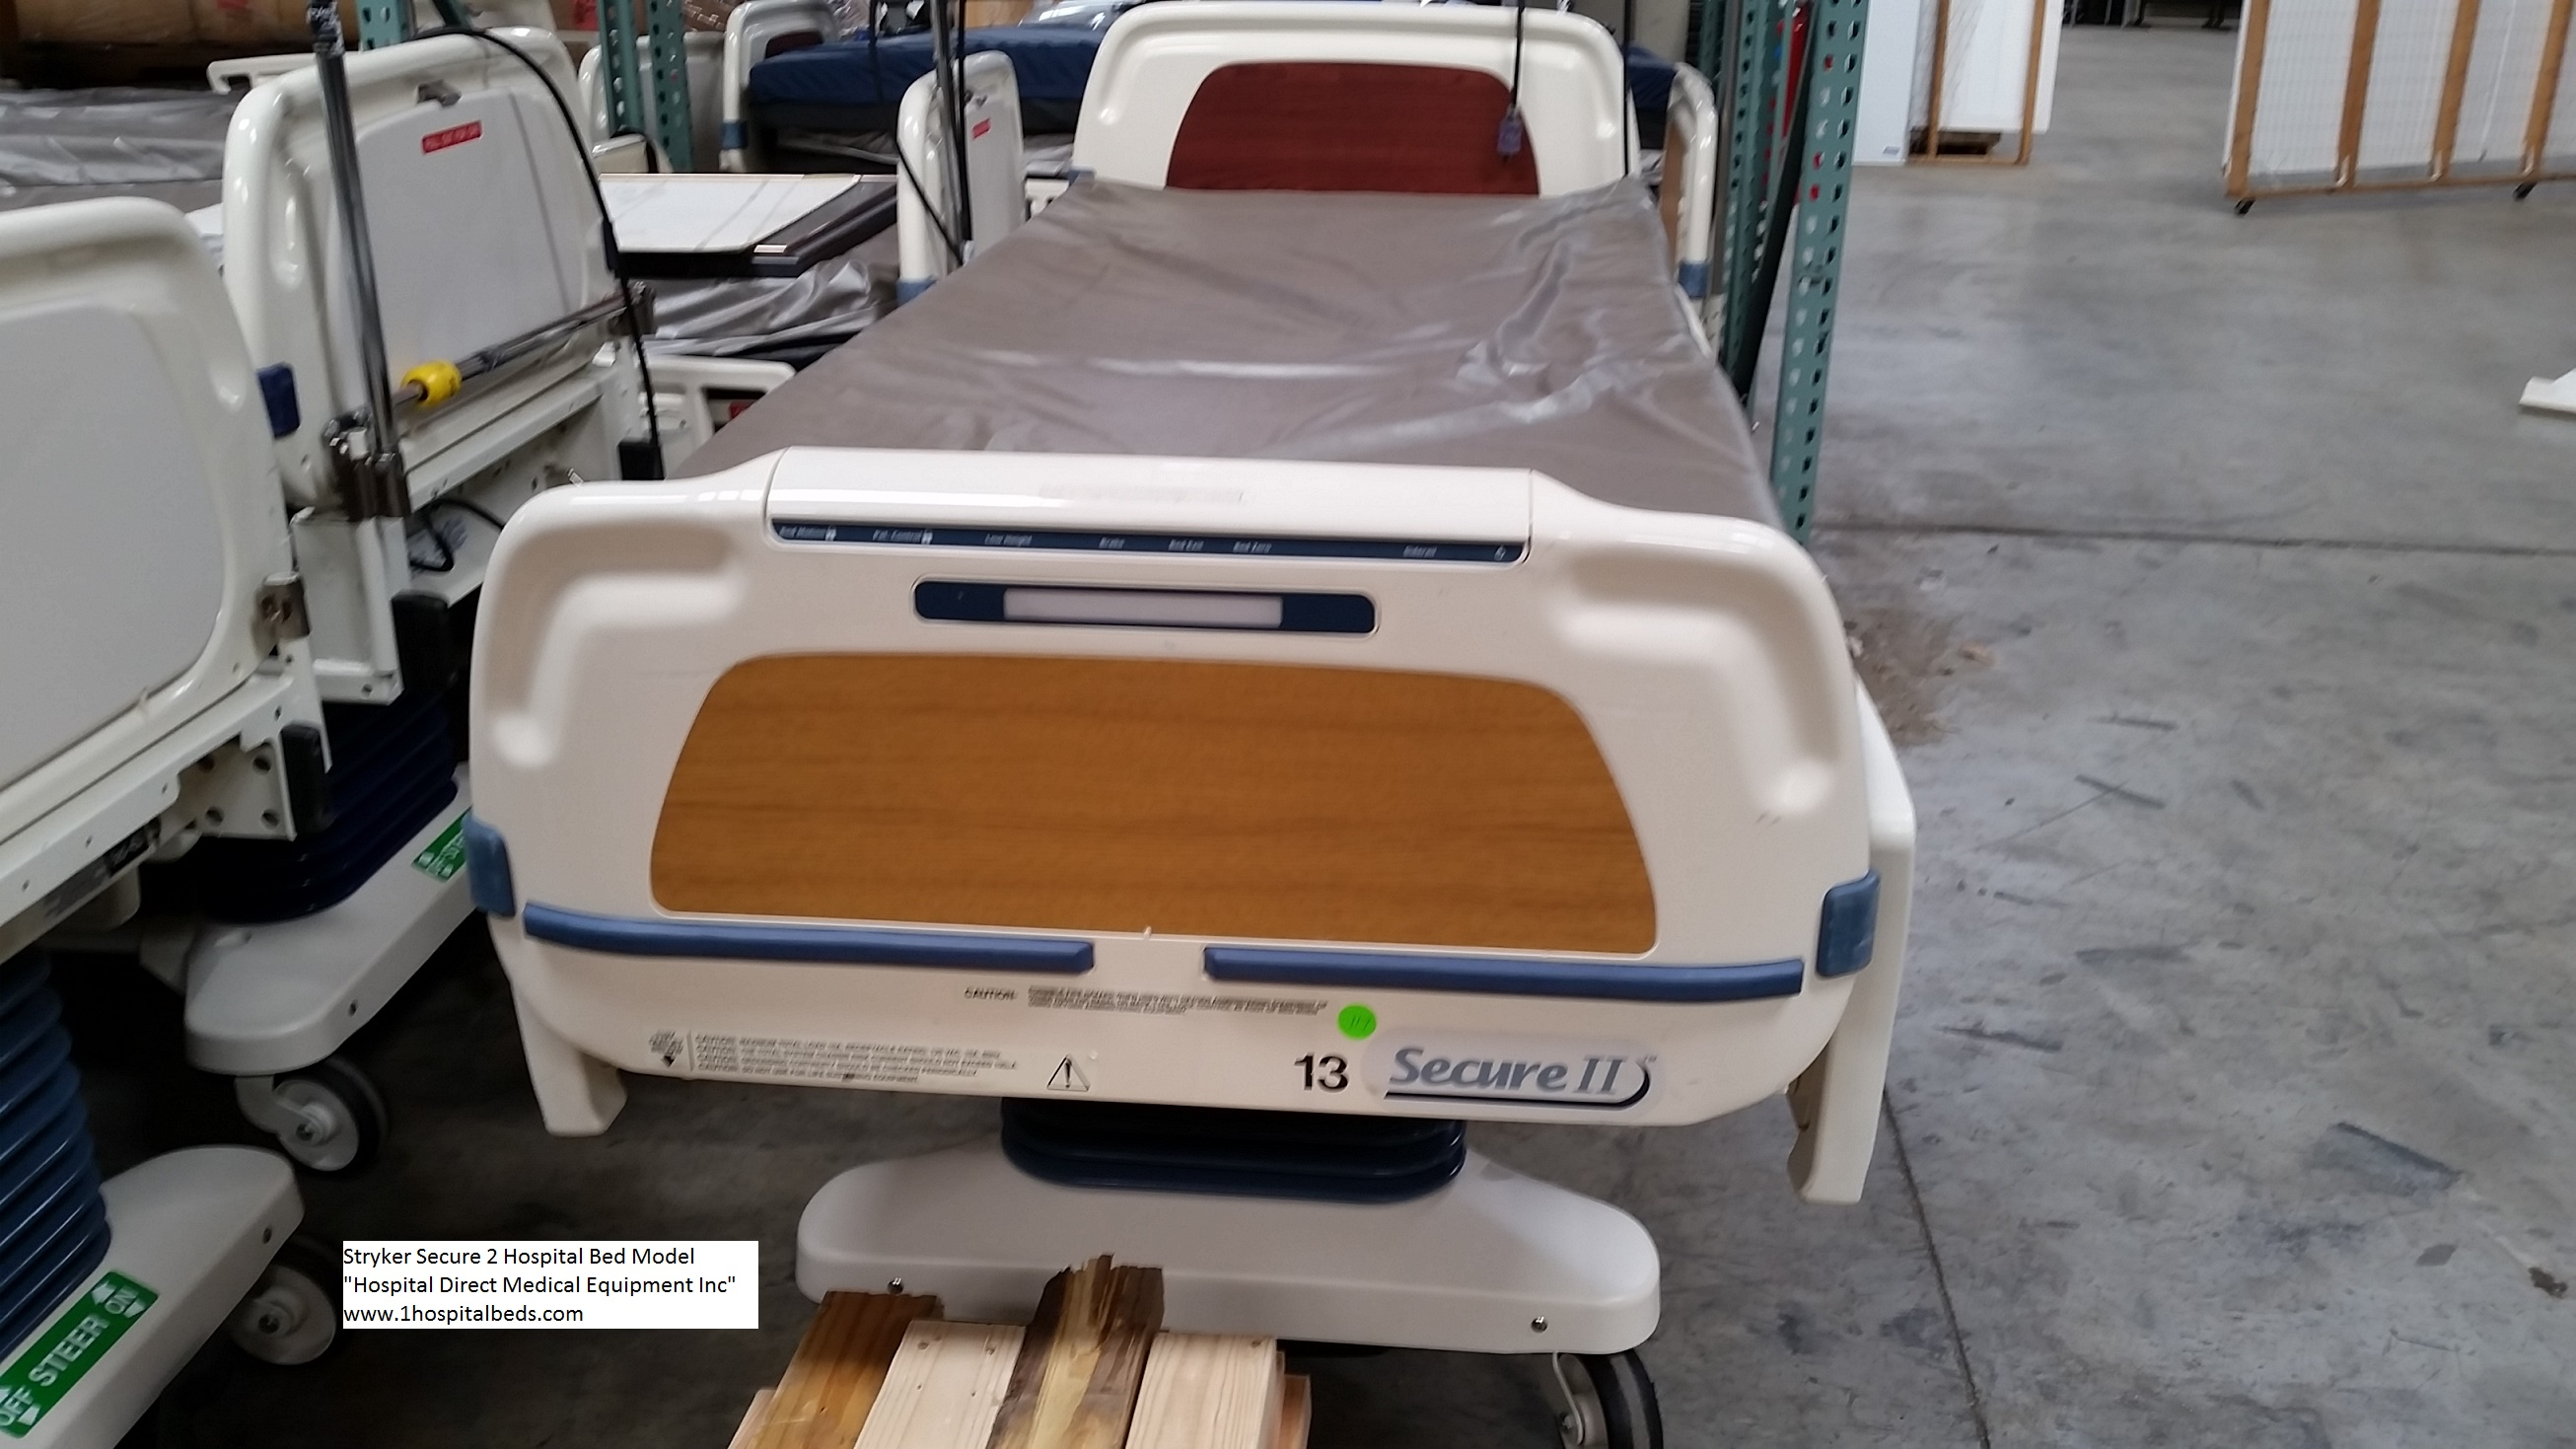 refurbished hill rom p1900 totalcare treatment and sport bed models stryker secure 2 hospital bed for sale 2 stryker secure 2 hospital bed for sale 4